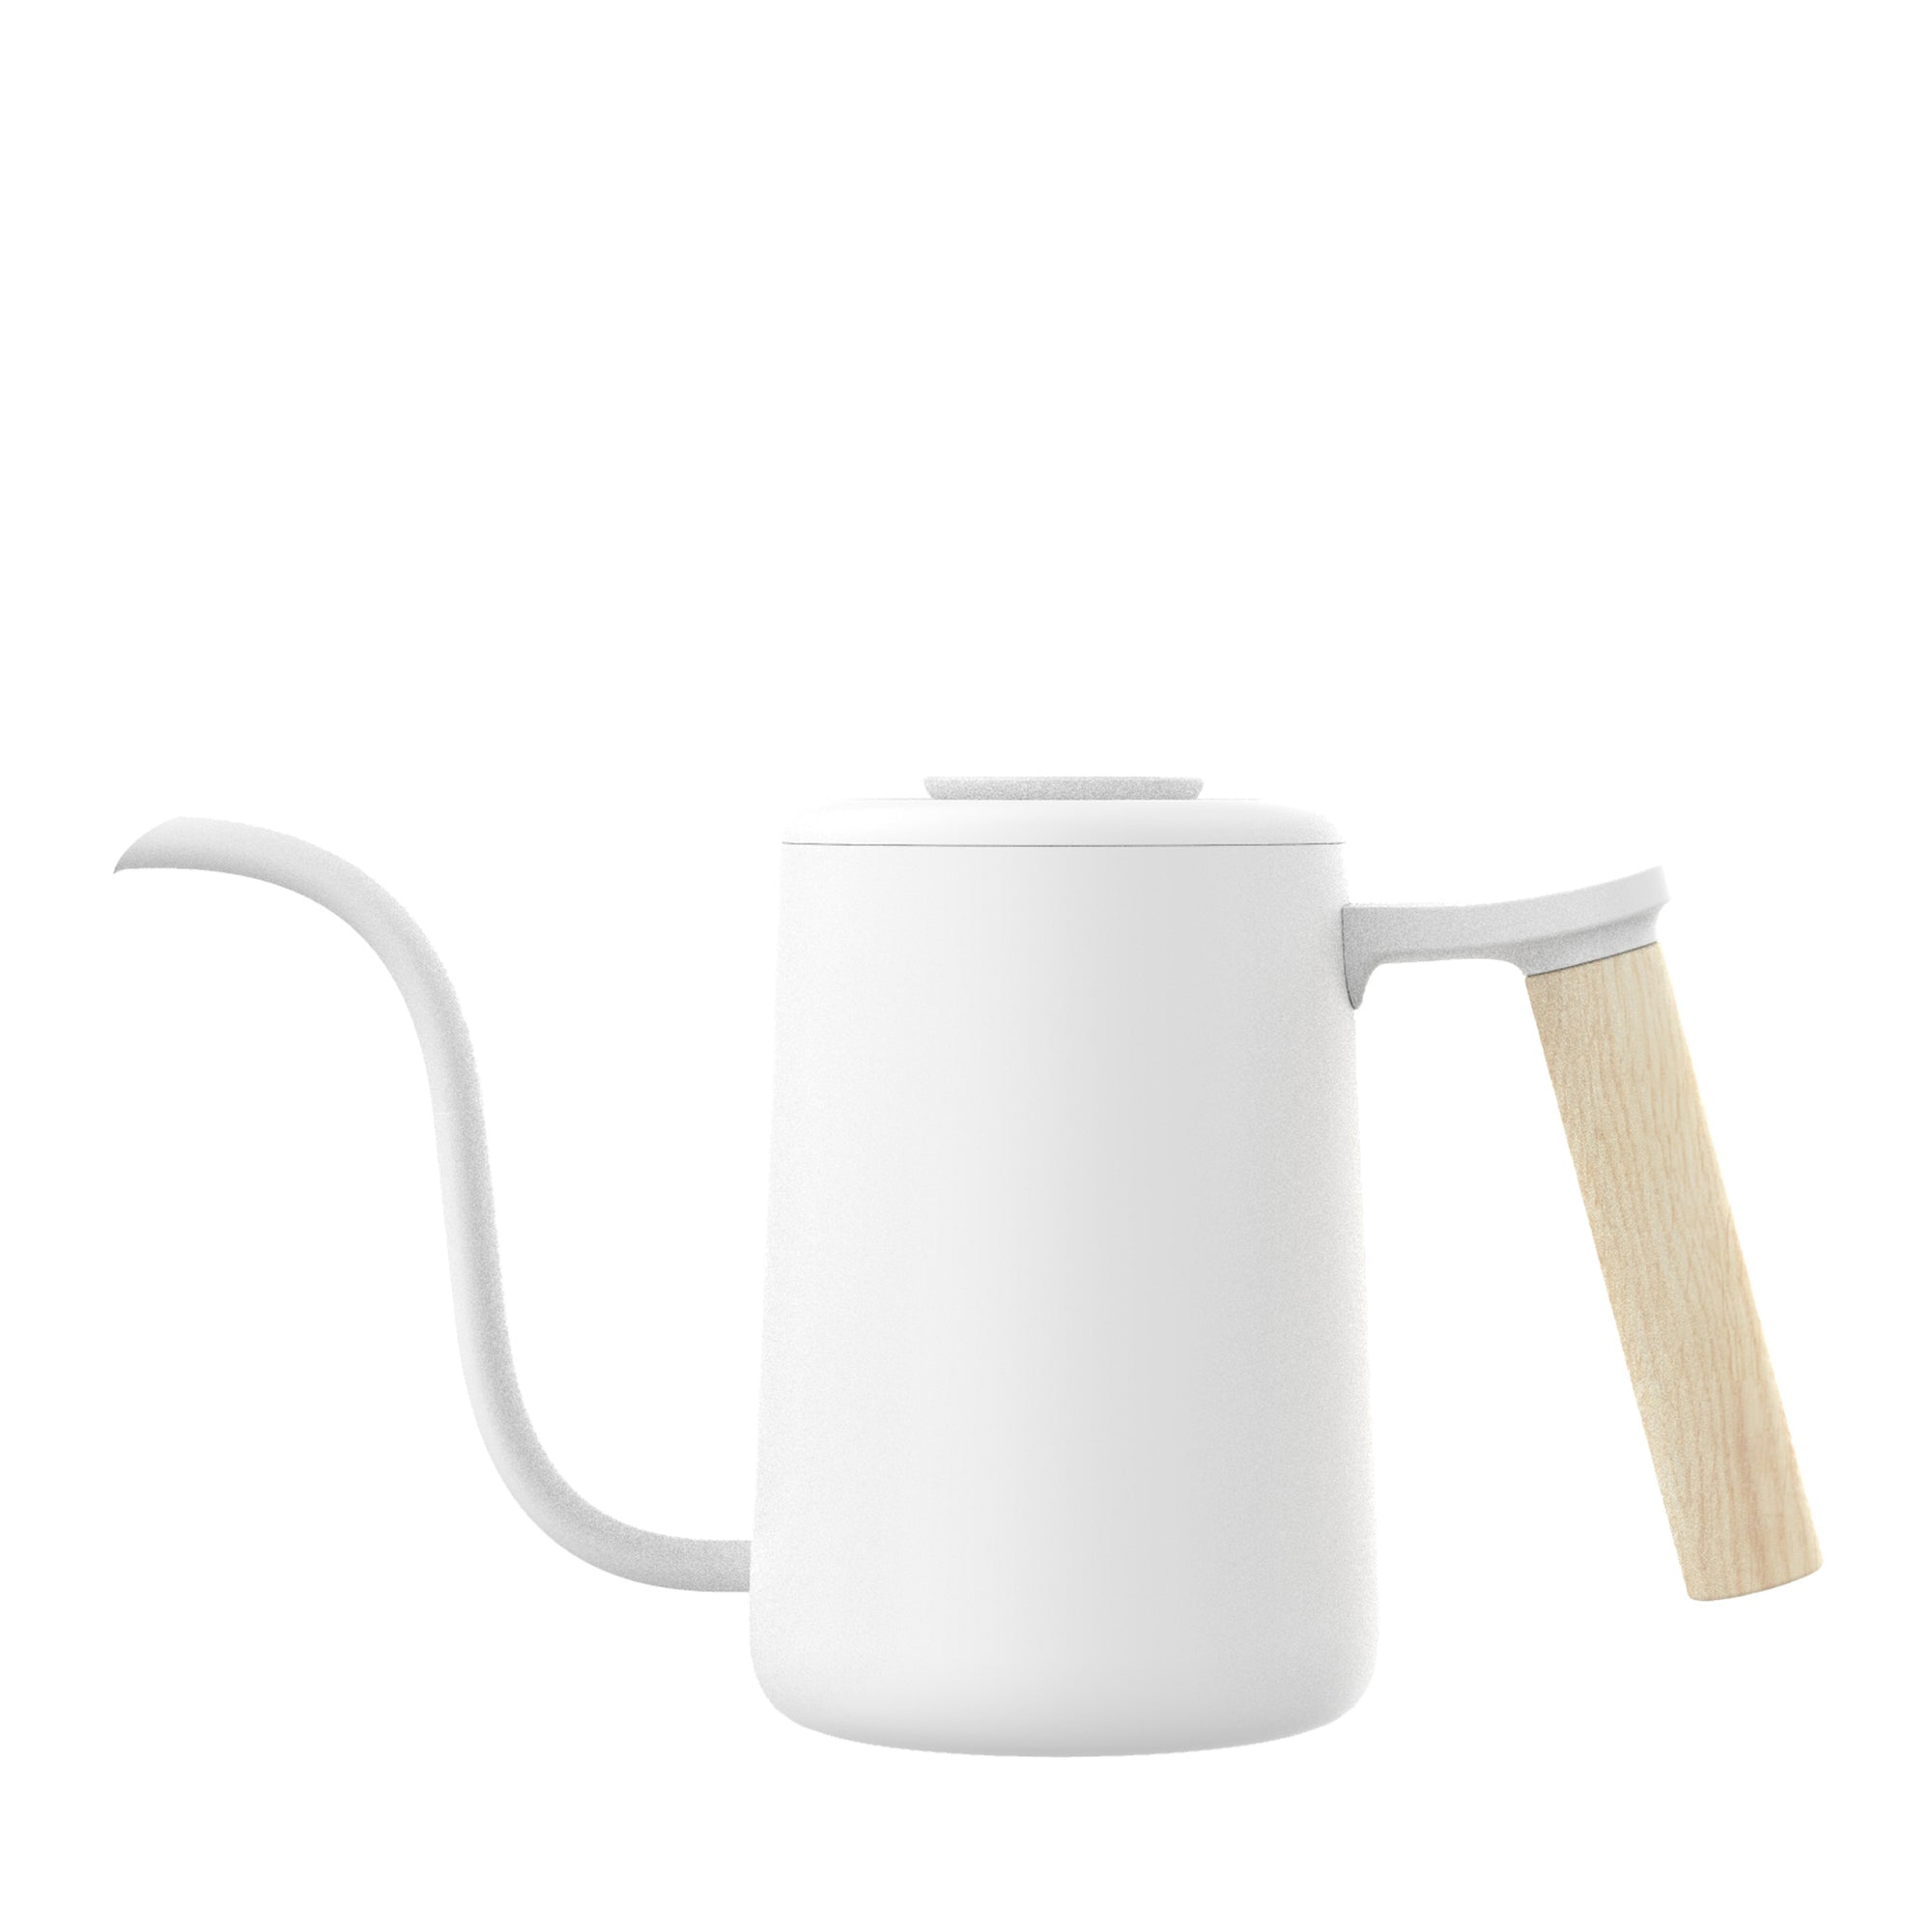 Timemore Youth Kettle White - Espresso Gear